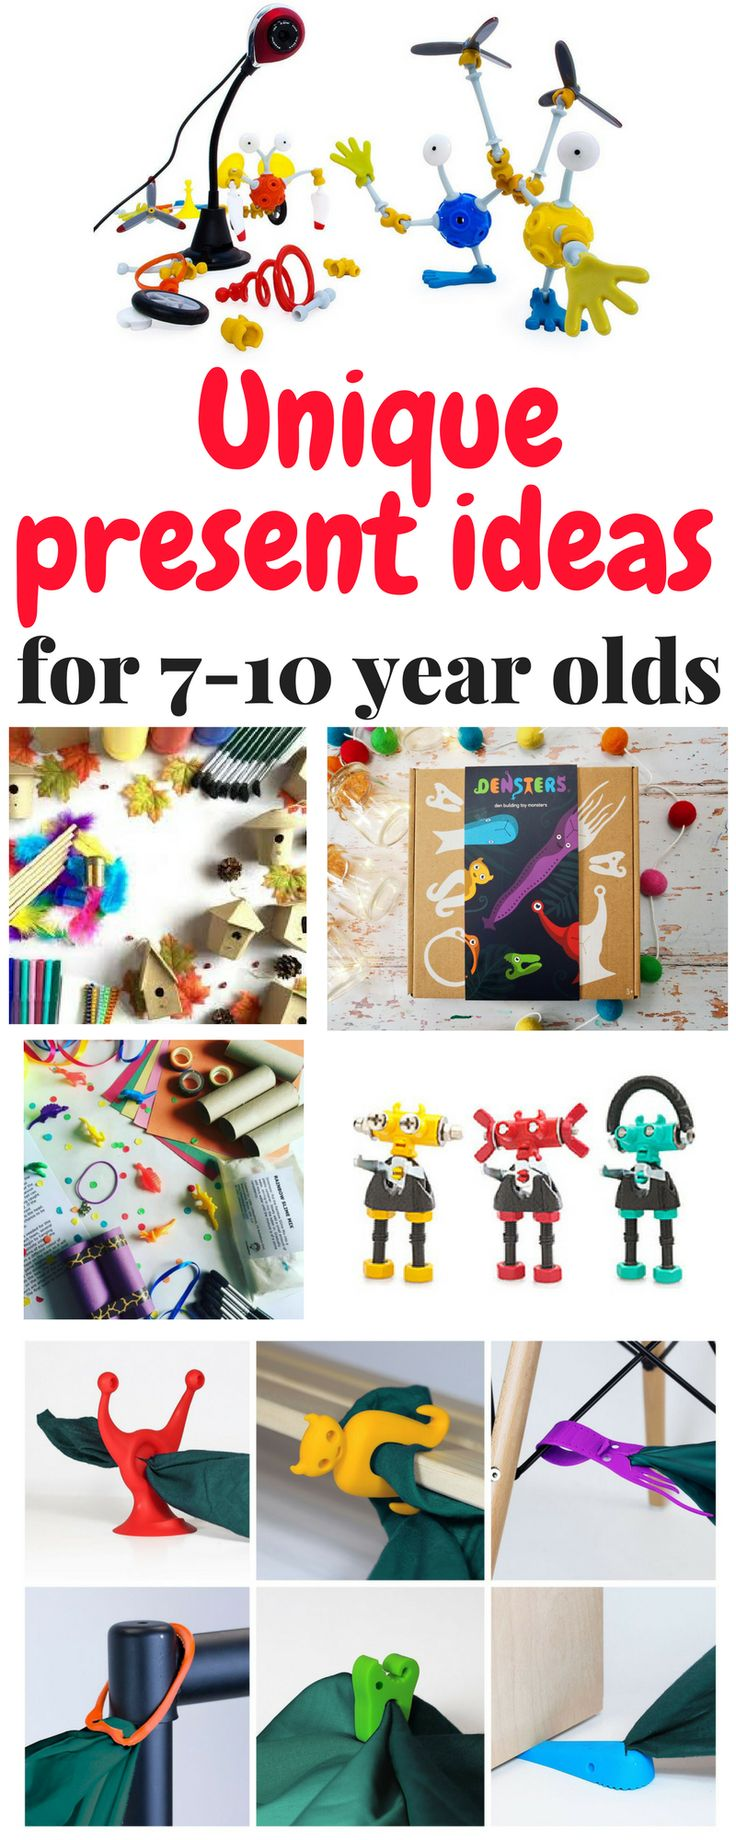 unique present ideas for 7-10 year olds